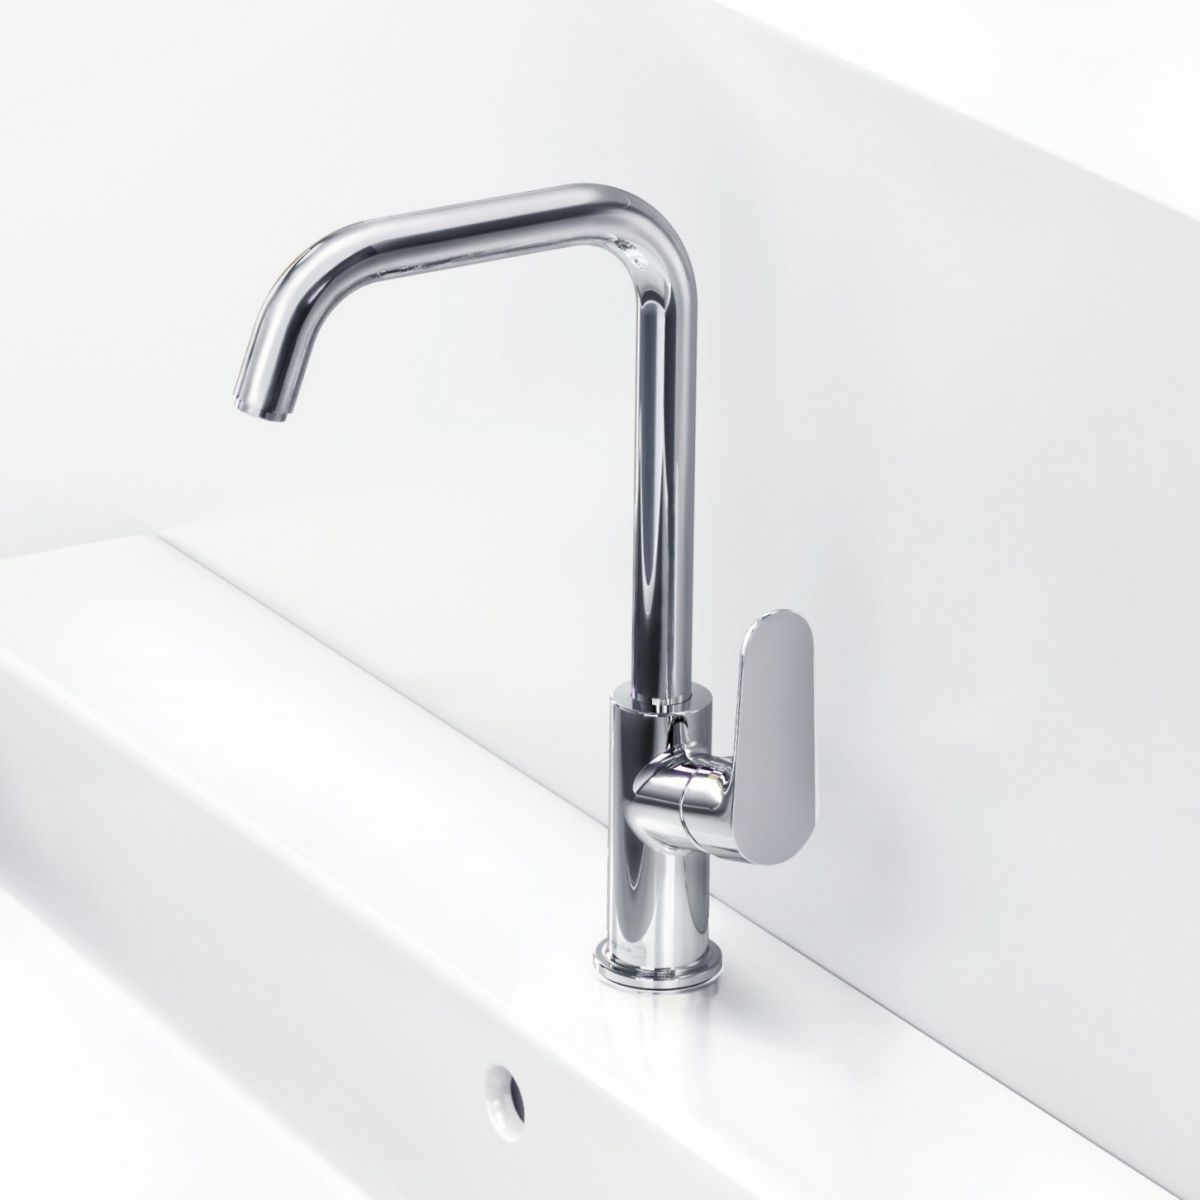 Fin Hansgrohe Focus 240 Swivel Spout Basin Mixer Tap | Bathrooms DX-02